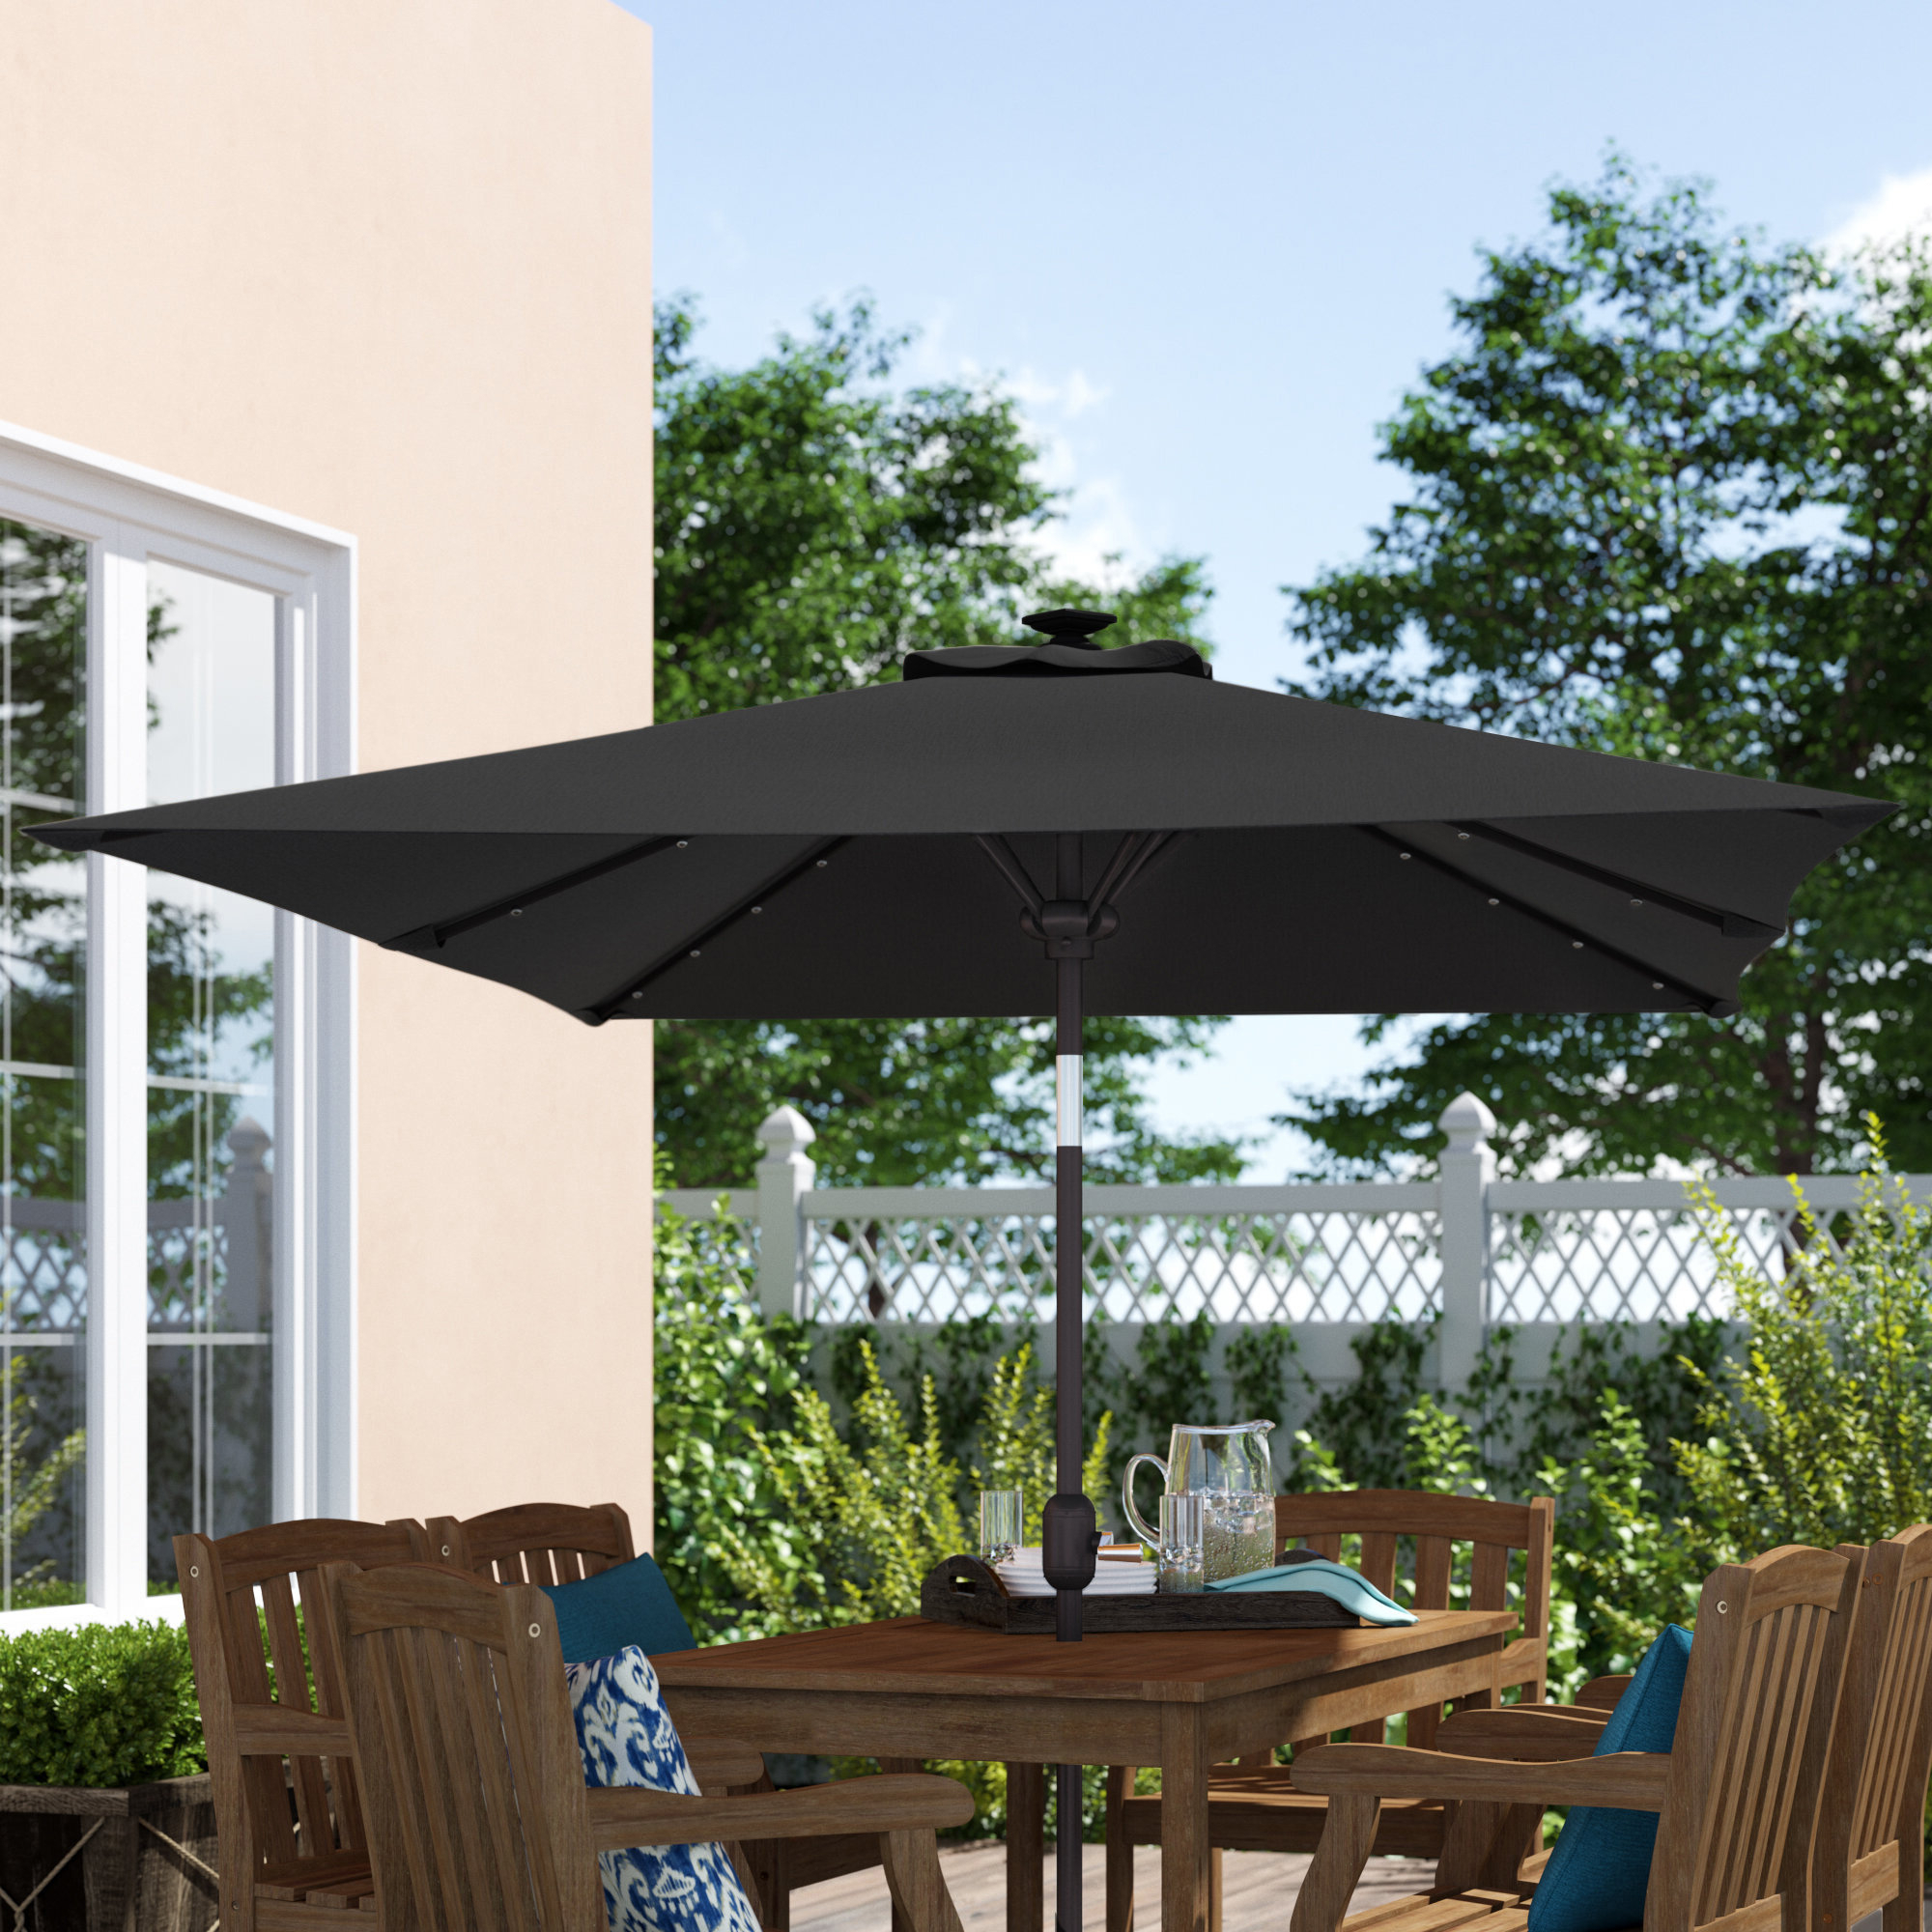 "2019 Gries Rectangular Market Umbrellas Inside Eliana Solar Lighted Sunshade Tilt Crank 10' X 6'6"" Rectangular Market Umbrella (View 11 of 20)"